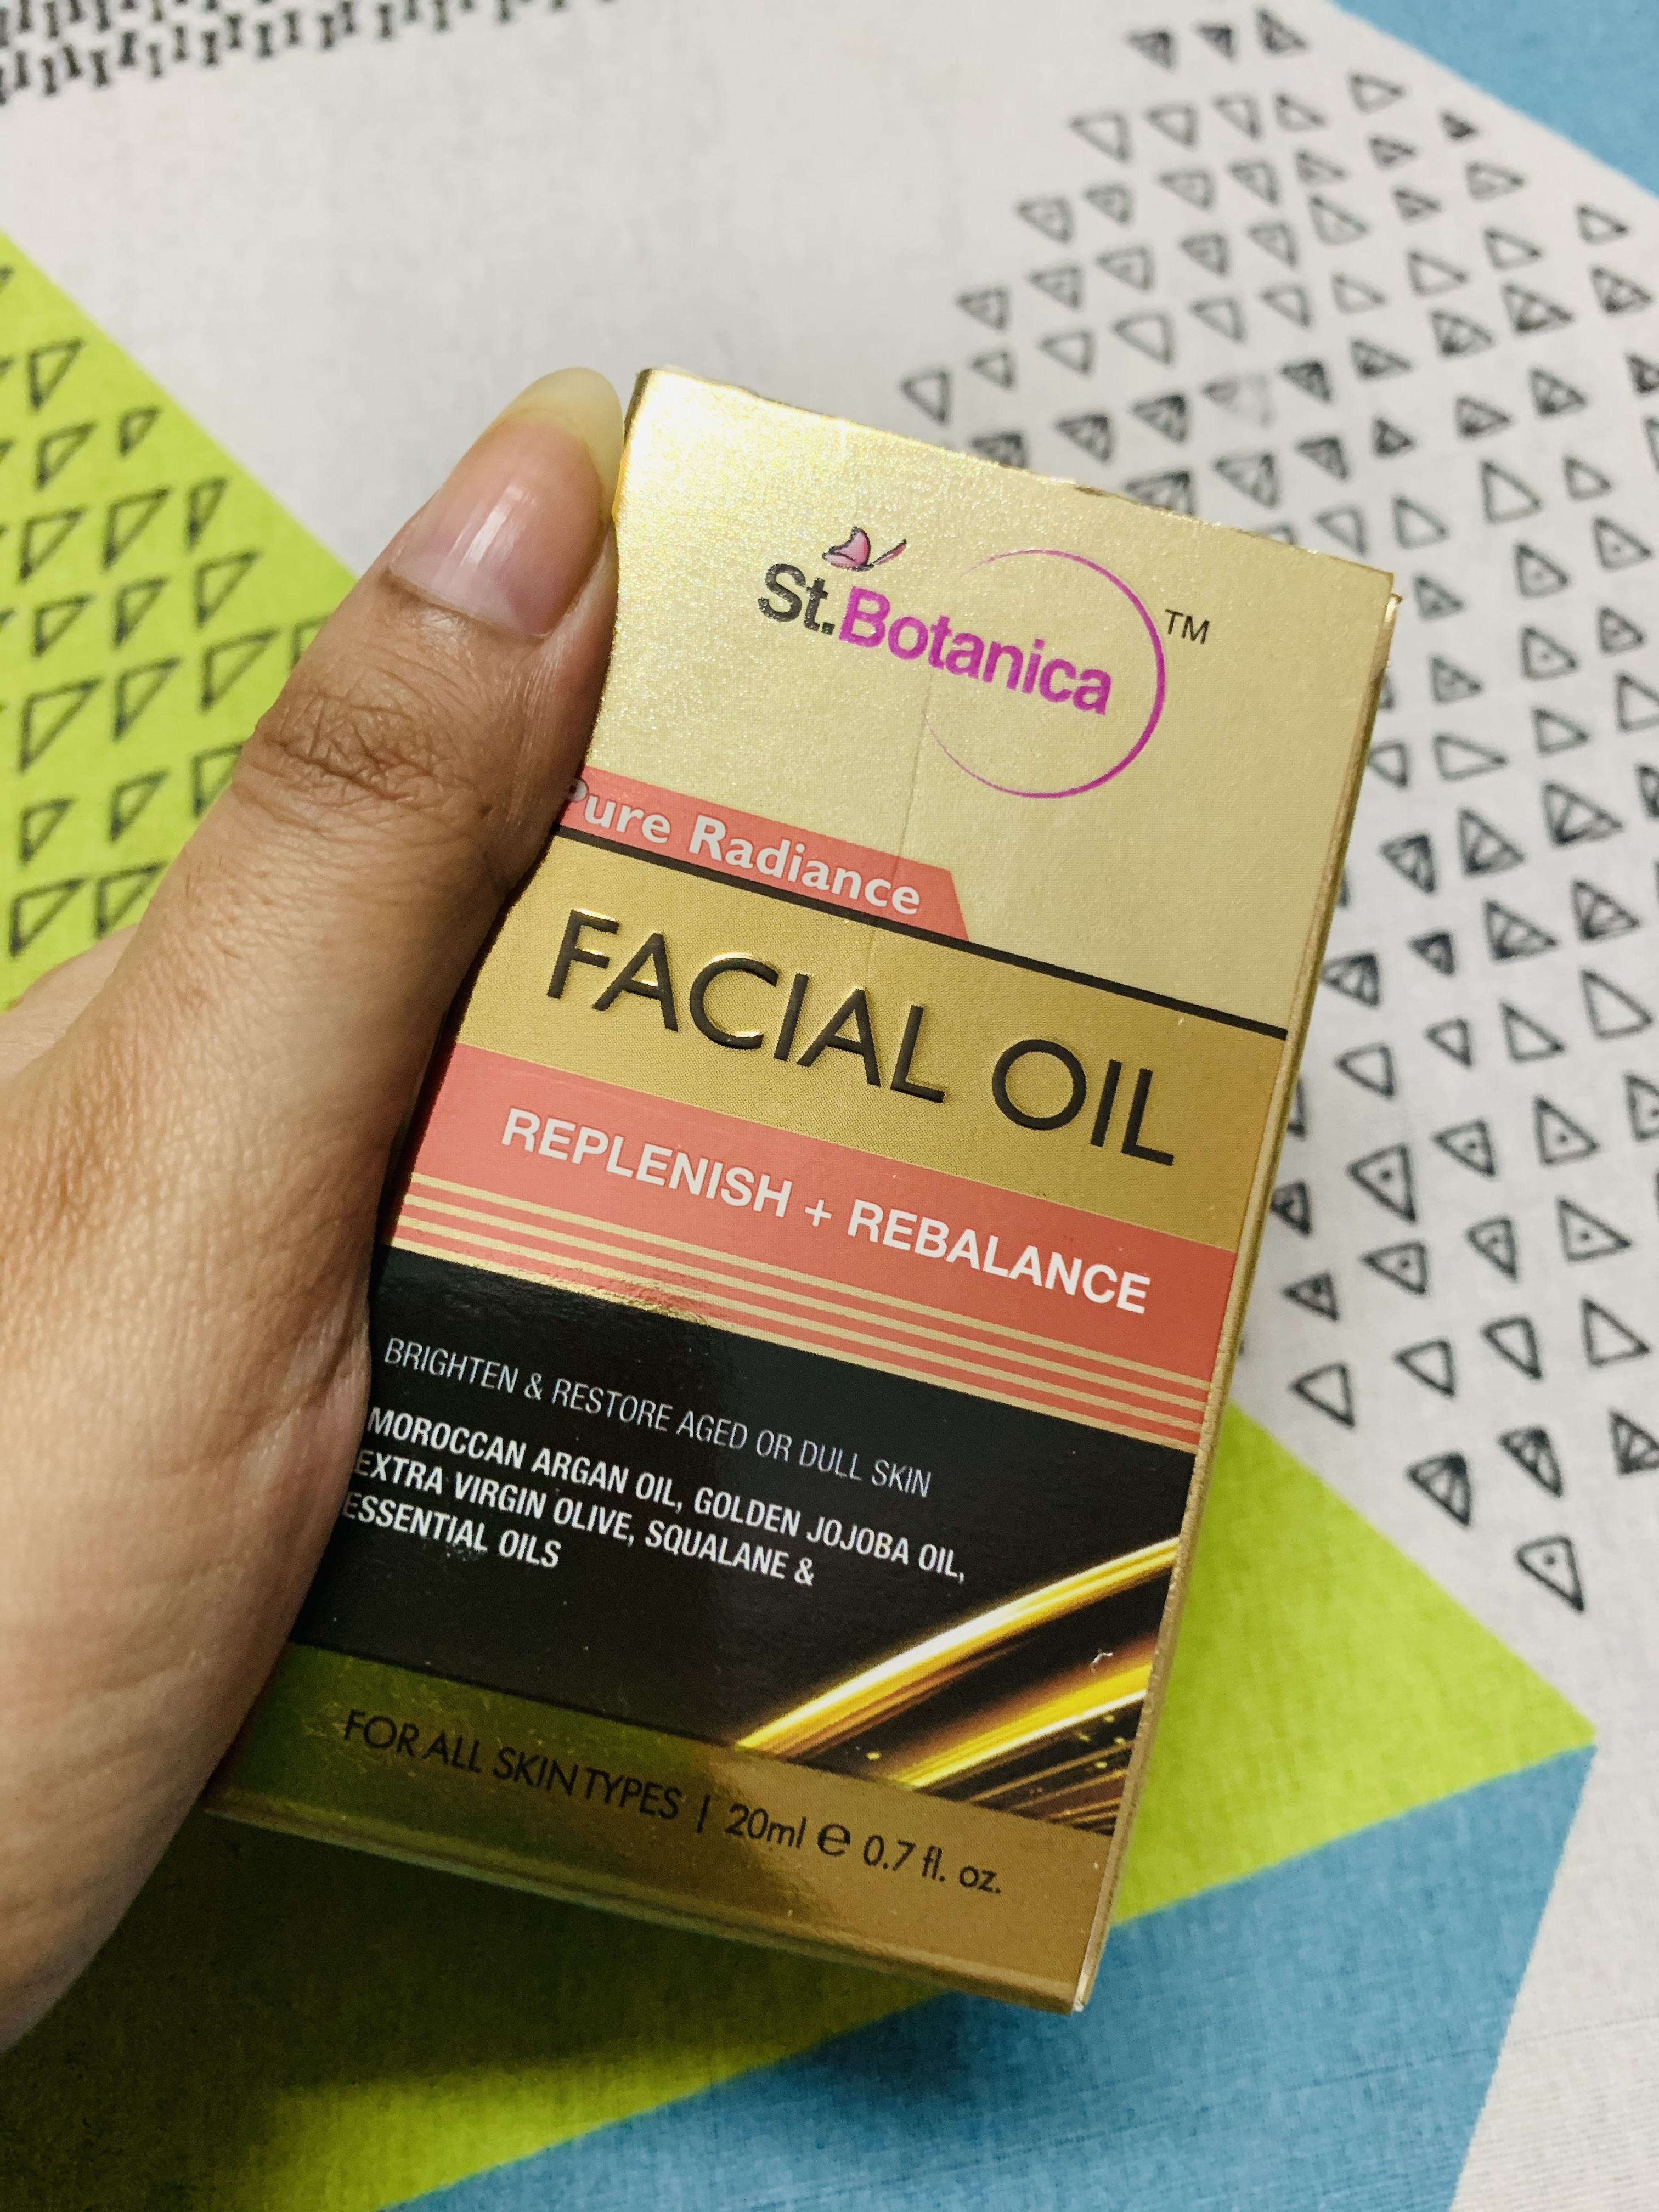 StBotanica Pure Radiance Facial Oil-Extremely lightweight-By debdatta-2